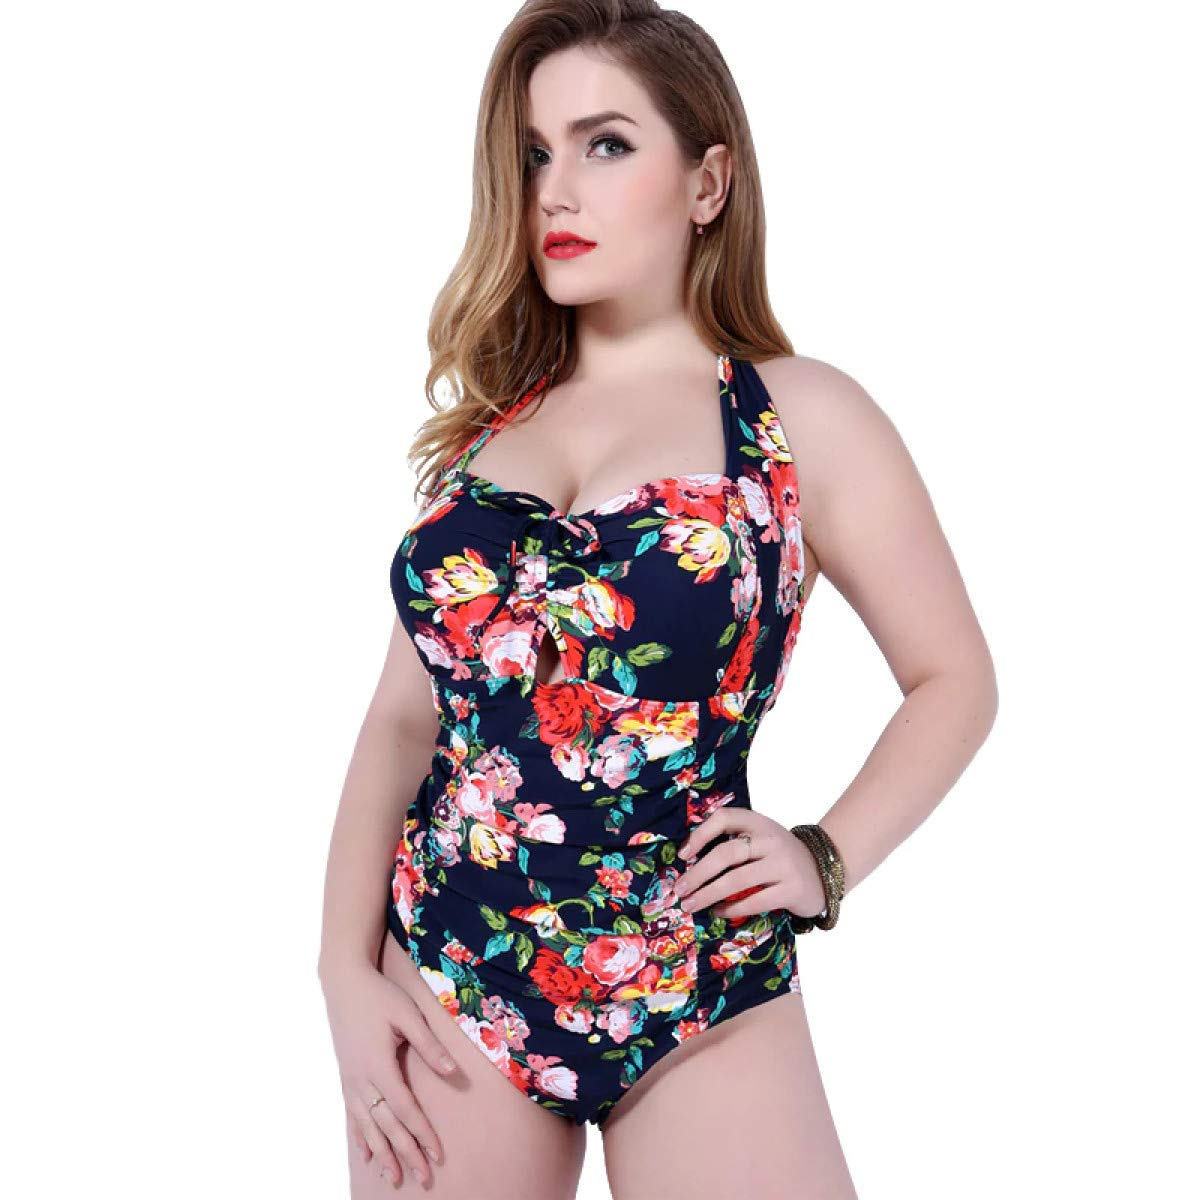 One Piece Swimsuit Floral Printed Swimwear Women Halter Top Monokini Underwire Push Up Bathing Suit Plus Size 6XL